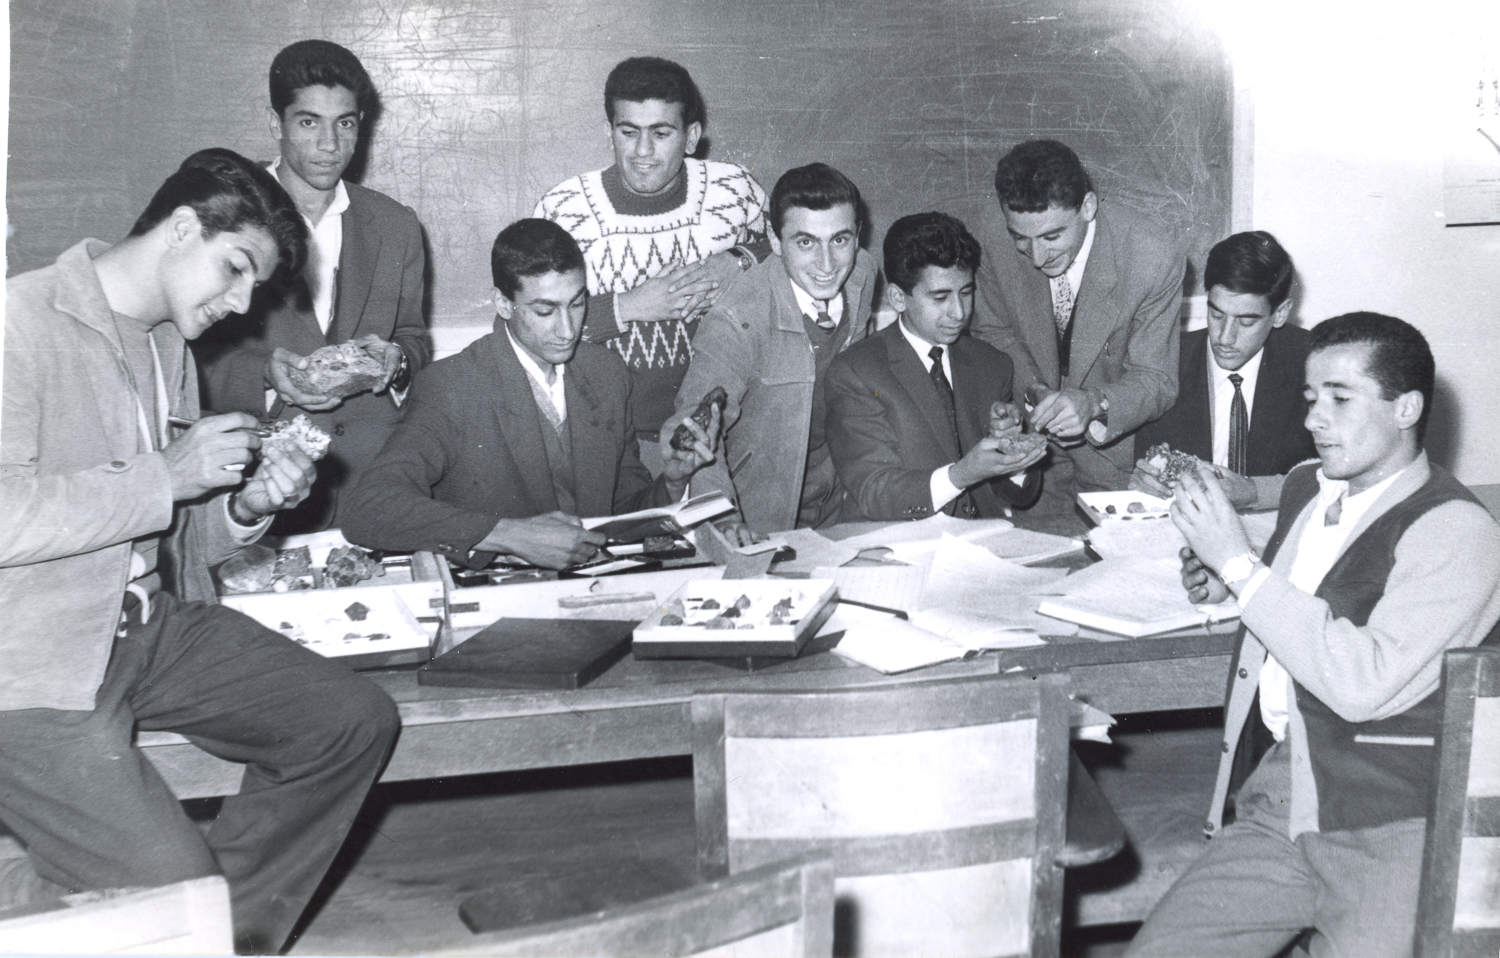 An image of classmates at the University of Baghdad in the 1960s as submitted to the Iraqi Photo Archive.